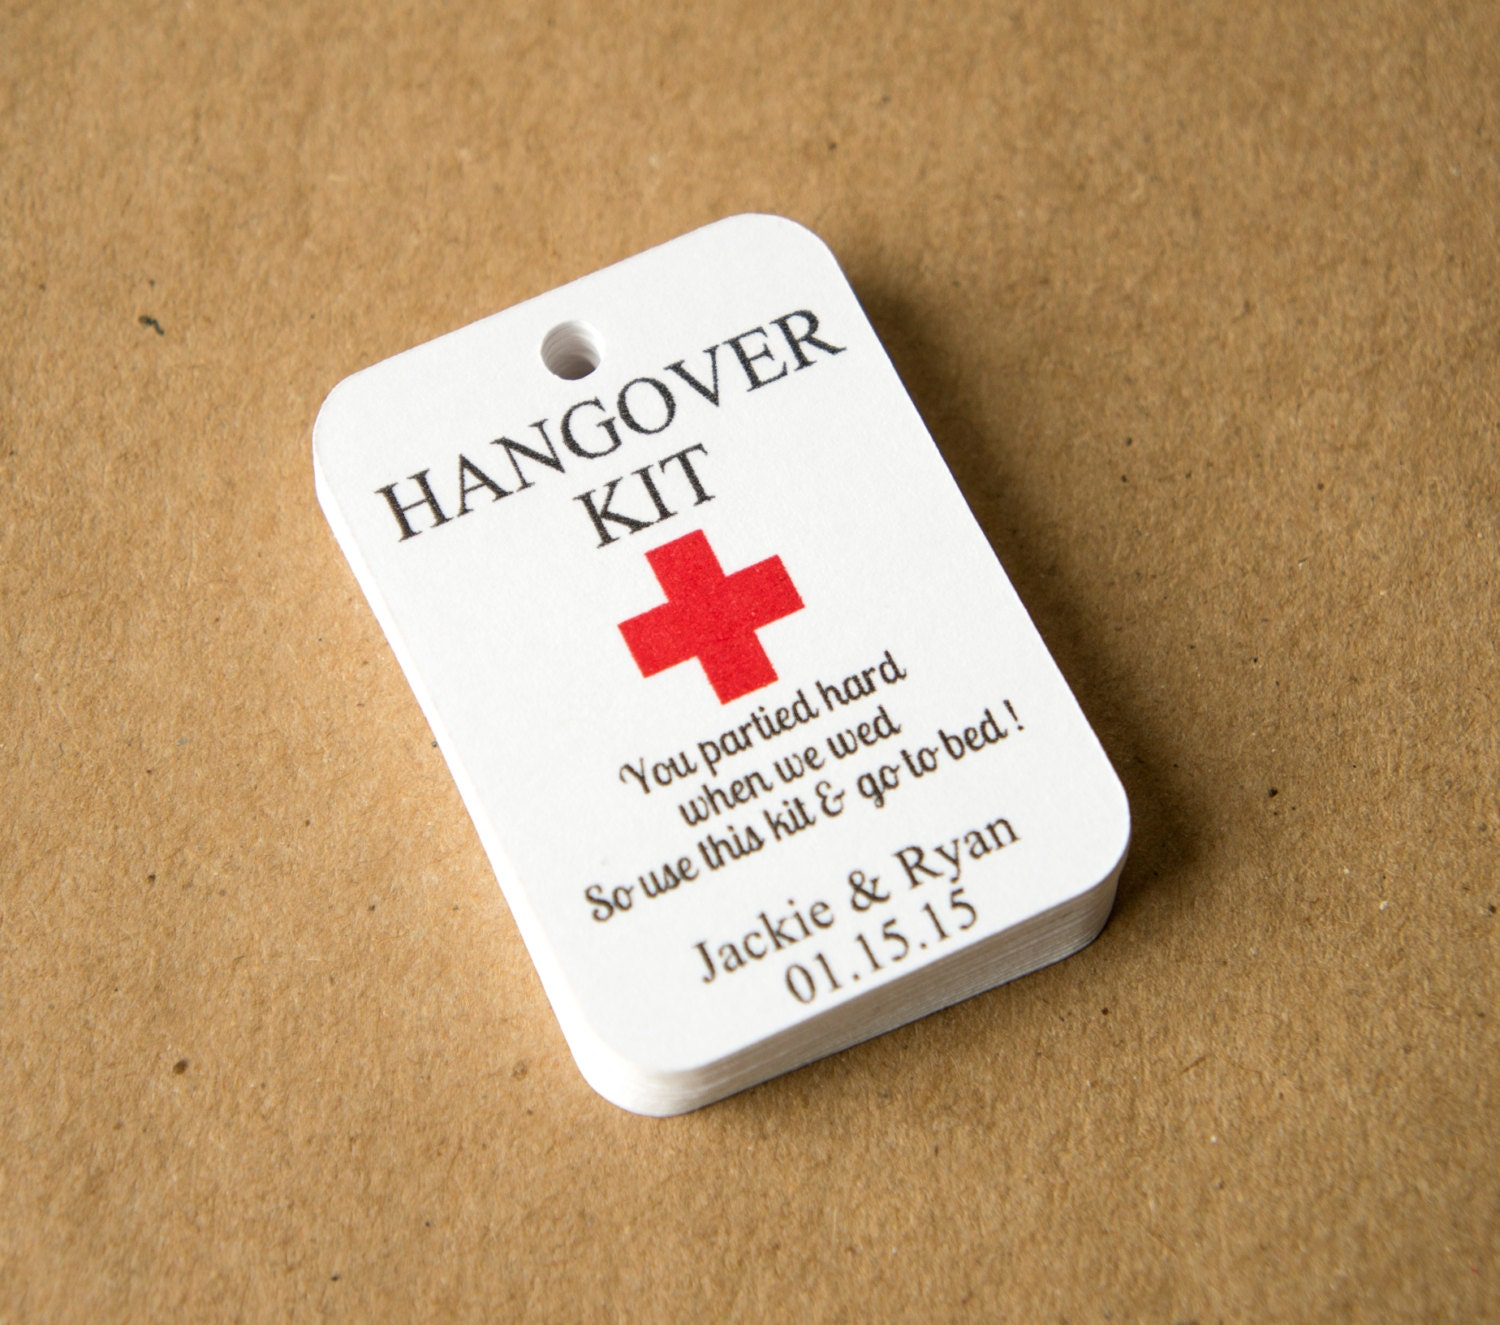 Hangover Kit Tags 1 75 By 1 25 Inches Hangover Kit Wedding